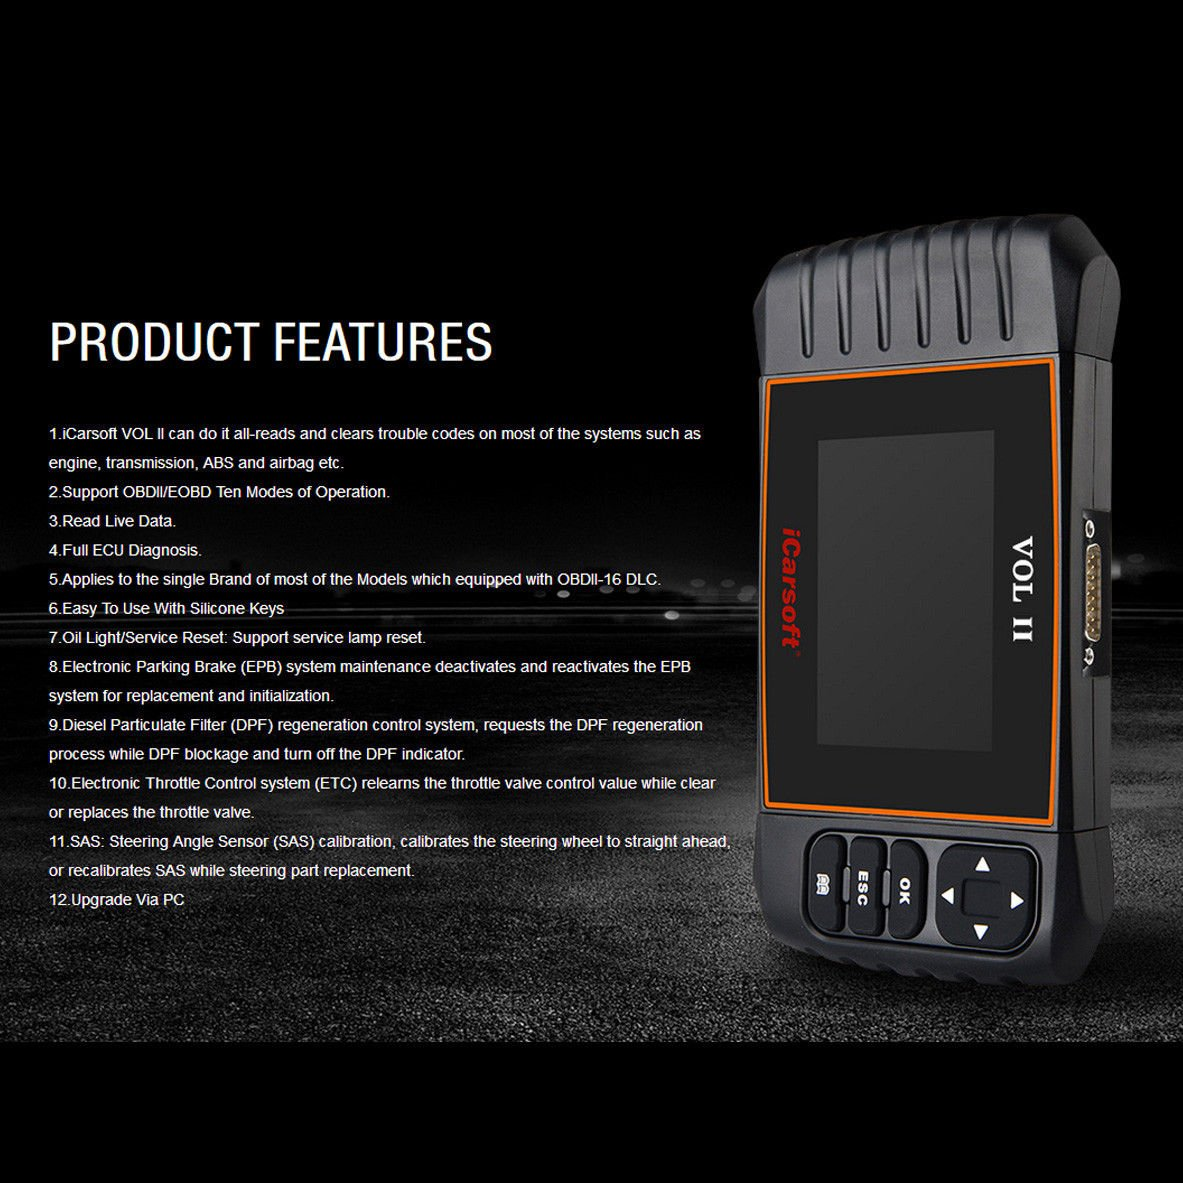 iCarsoft VOL II OBDII diagnostic tool for Volvo Saab multi systems, SRS ABS Engine oil reset, EPB by iCarsoft (Image #2)